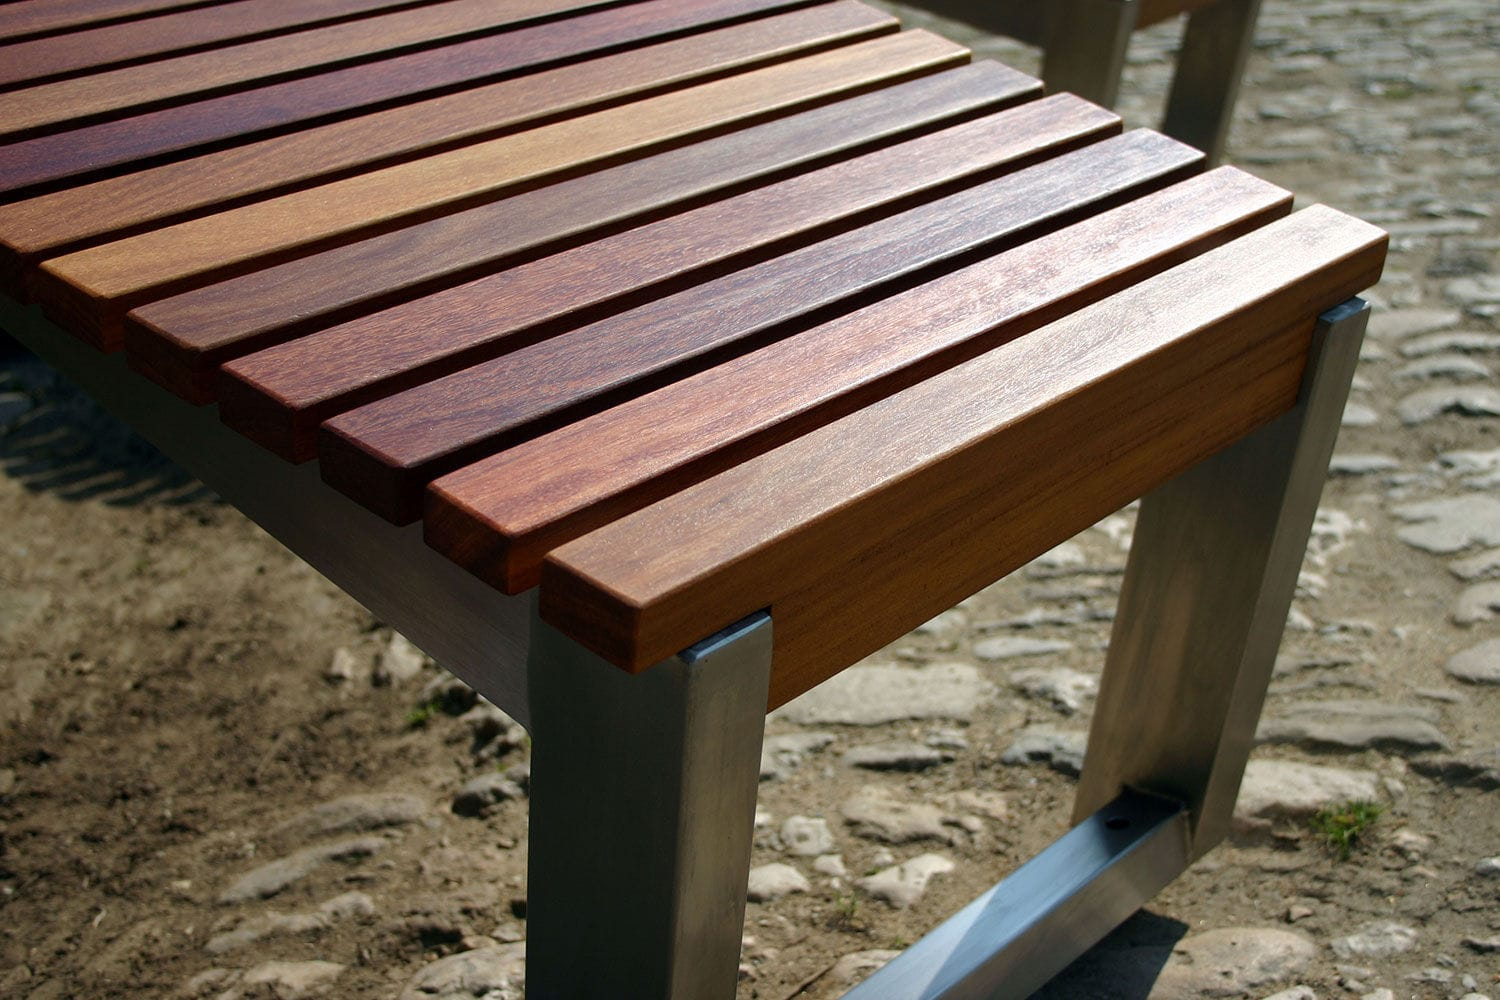 Contemporary Sun Lounger Wooden Stainless Steel For Public Spaces